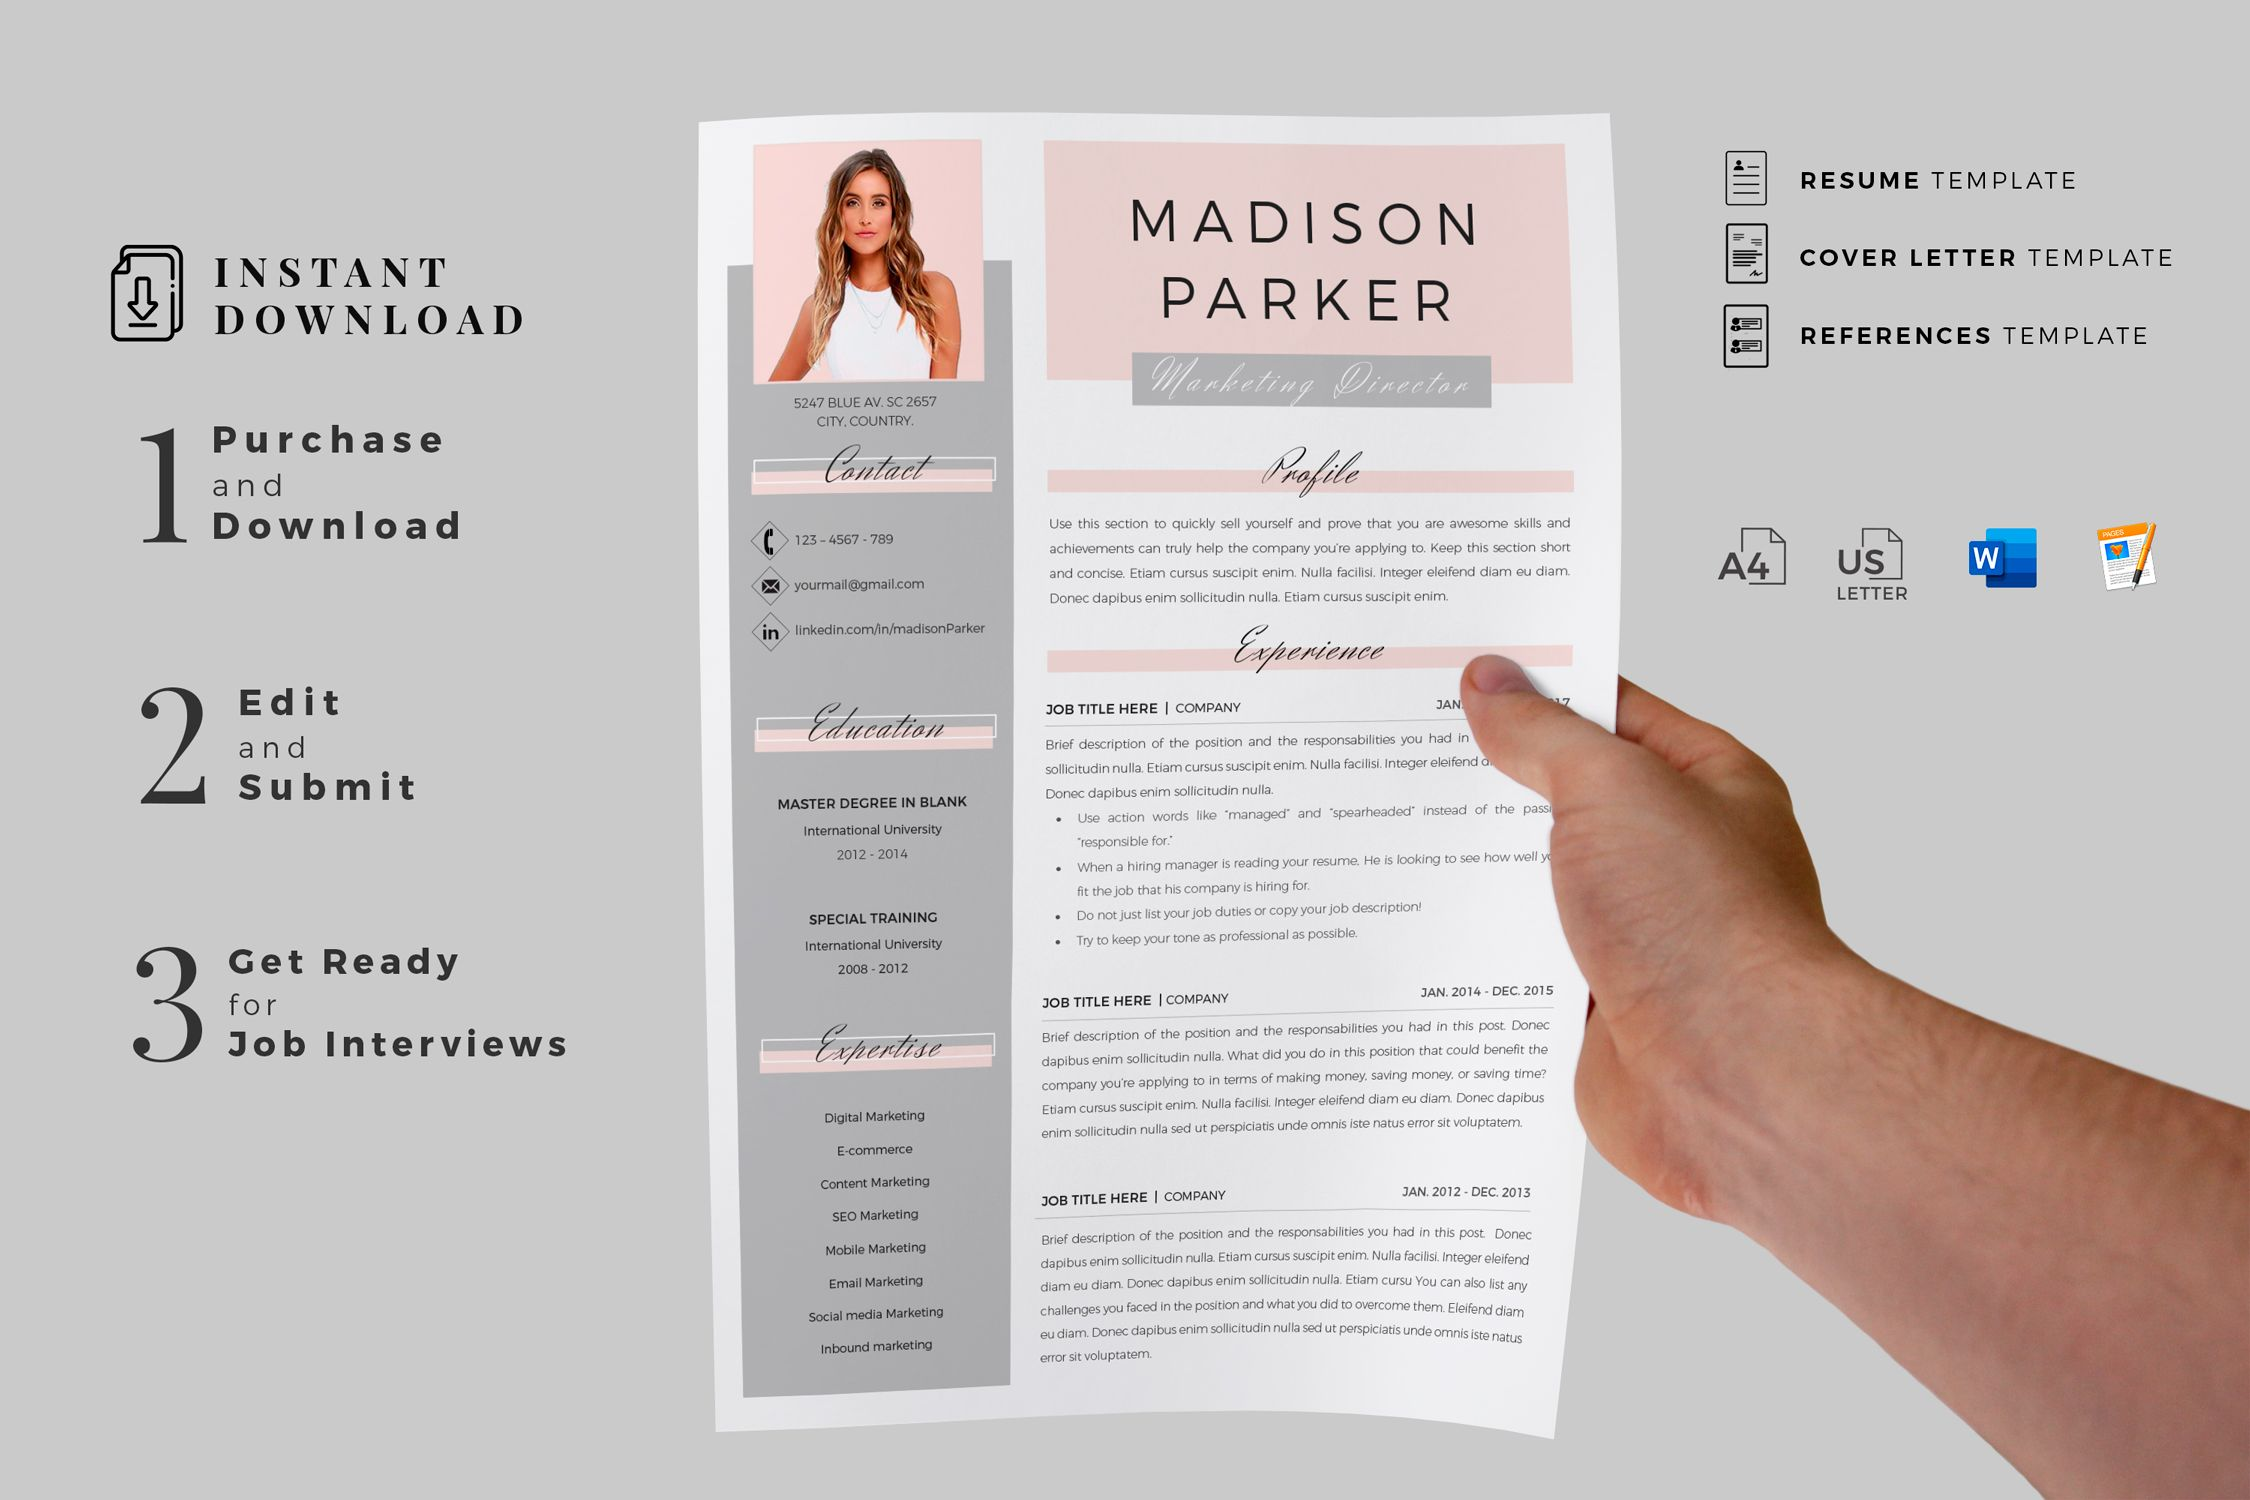 Creative Resume Format For Freshers Internship Resume Template For Ms Word And Mac Pages Simple Cv Creative Resume Templates Creative Resume Resume Templates